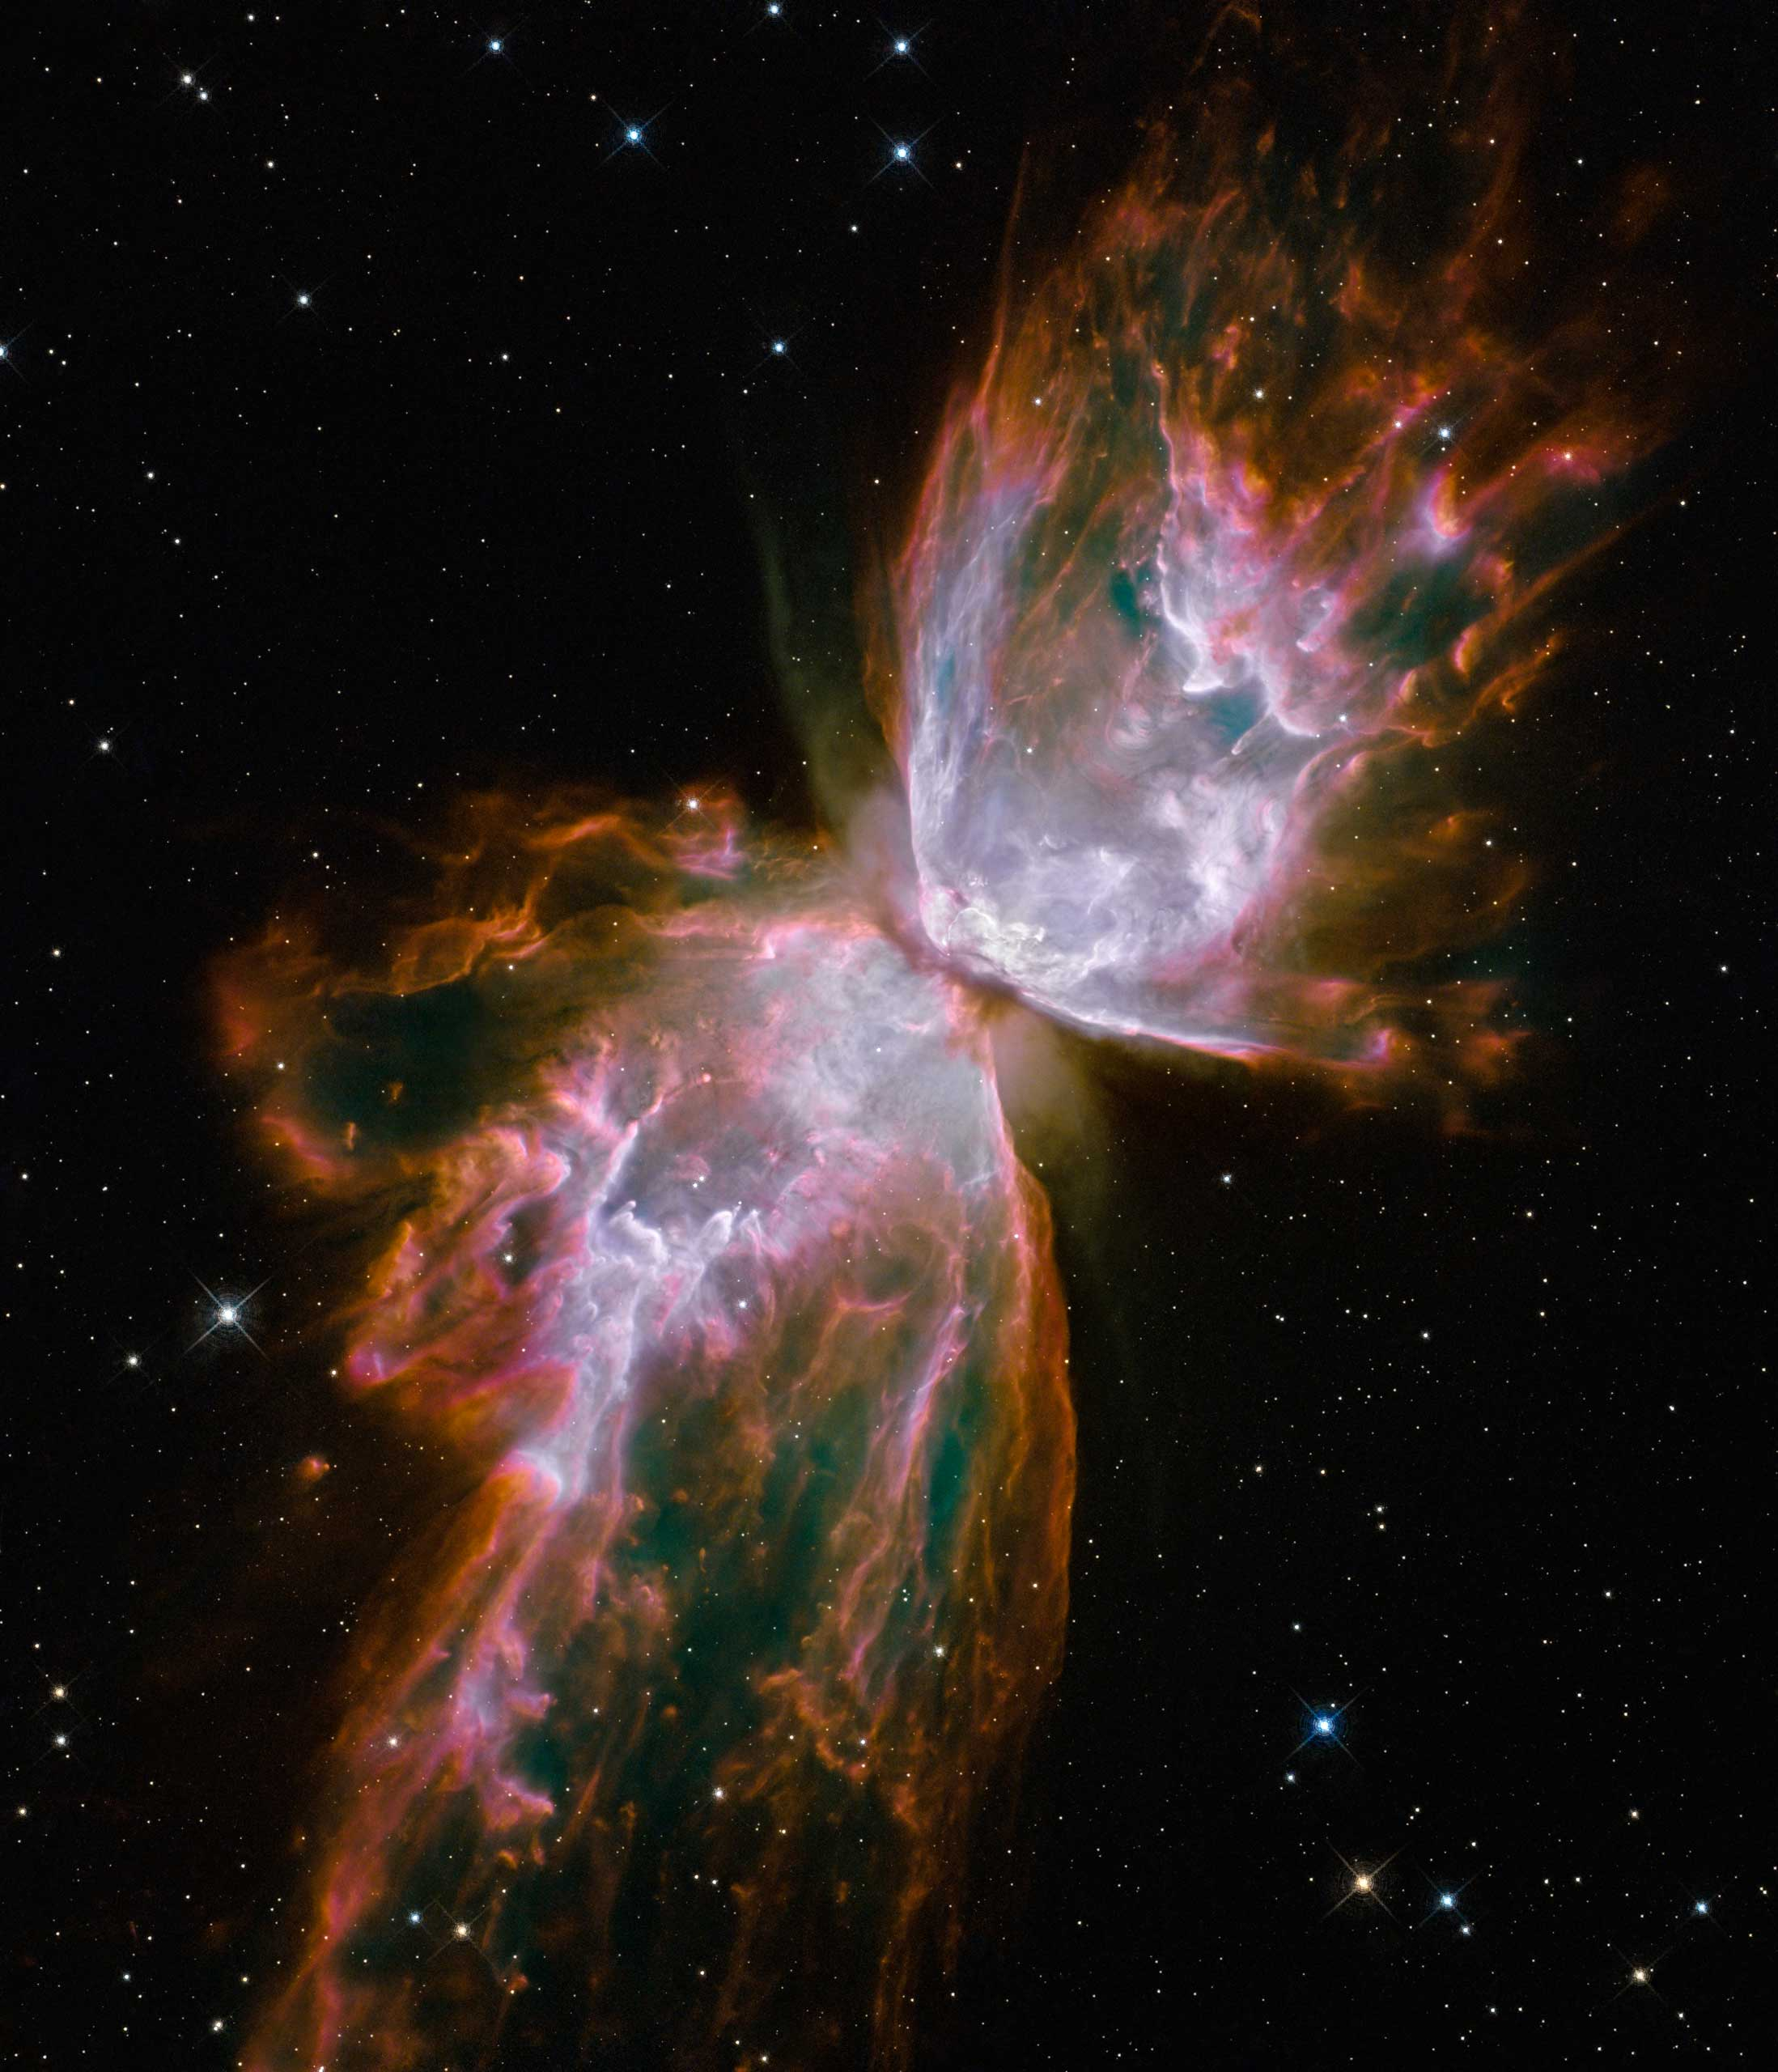 The Butterfly Nebula:                                                              With a wingspan of over 3 light-years and an estimated surface temperature of about 250,000 degrees C, the dying central star of this planetary nebula has become exceptionally hot, shining brightly in ultraviolet light but hidden from direct view by a dense torus of dust. Also known as NGC 6302, the nebula lies about 4,000 light-years away in the constellation of the Scorpion (Scorpius).                                                              Image released on Sept. 9, 2009